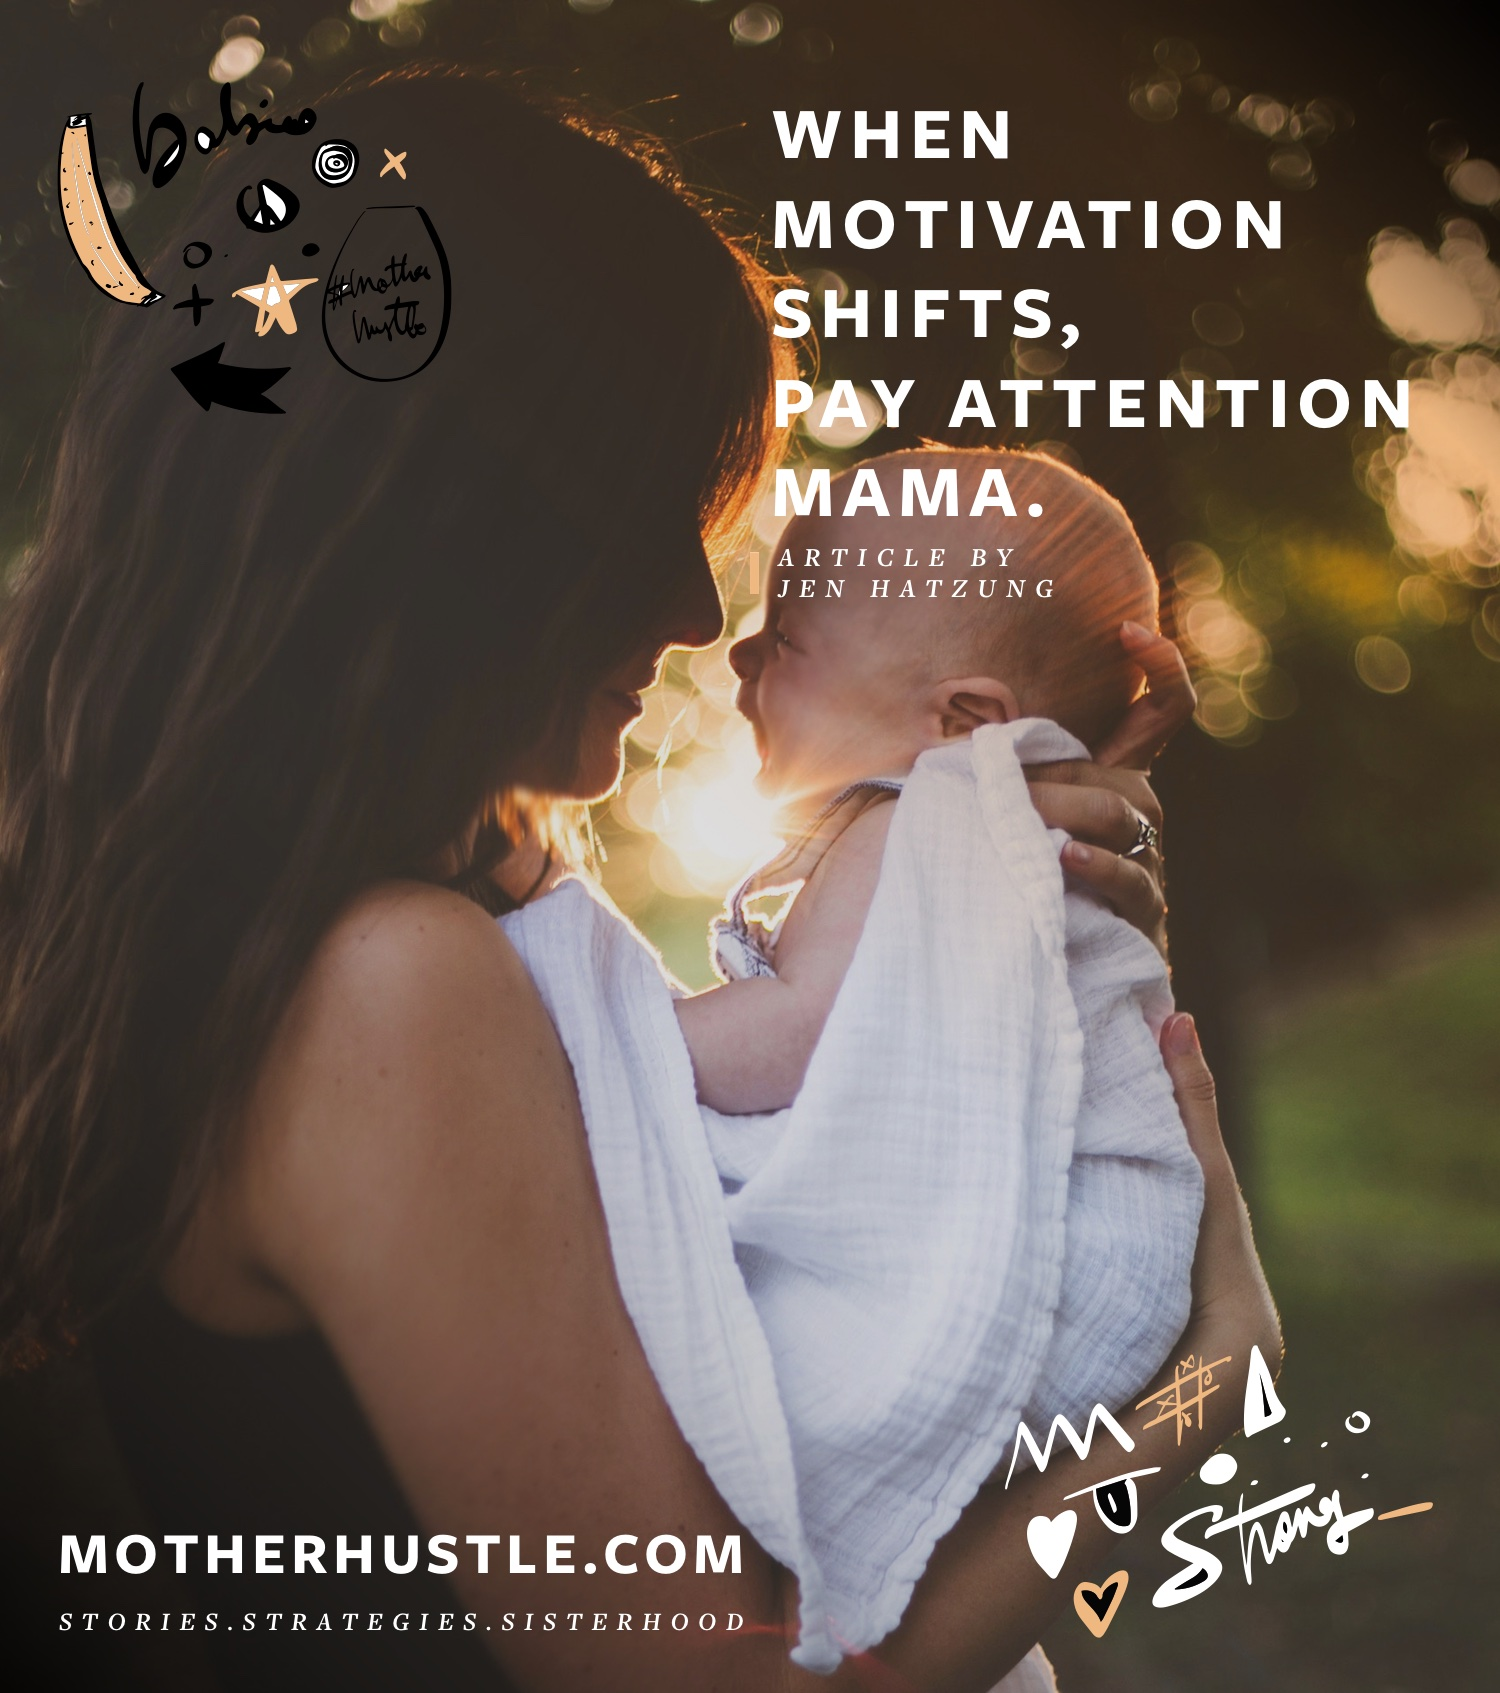 When Motivation Shifts, Pay Attention Mama - by Jen Hatzung for MotherHustle